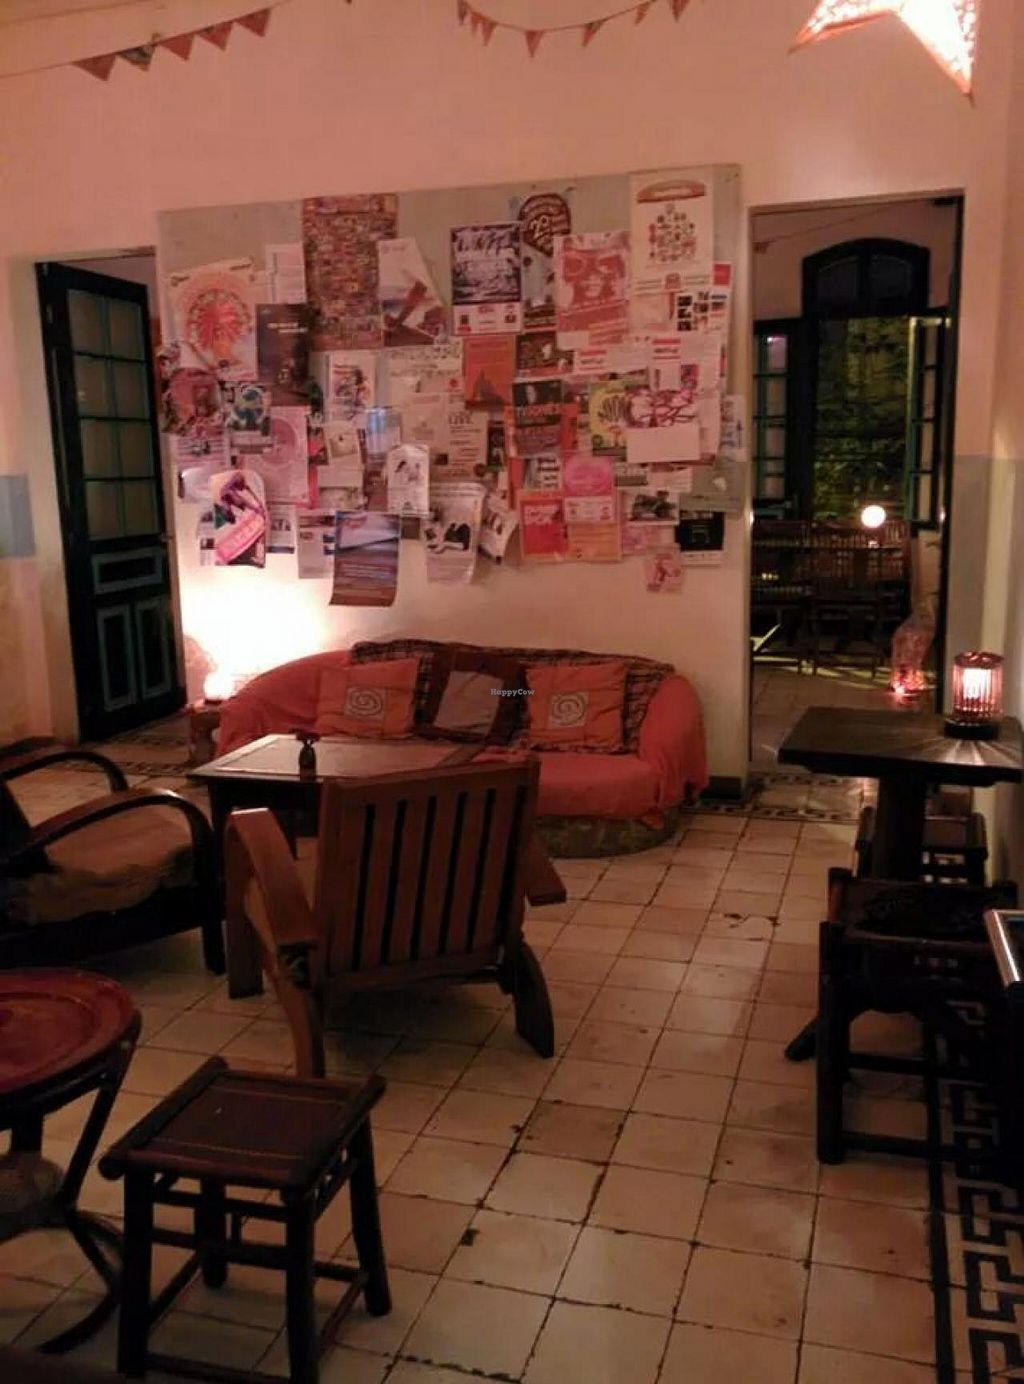 "Photo of The Hanoi Social Club  by <a href=""/members/profile/philjdomm"">philjdomm</a> <br/>upstairs <br/> May 10, 2014  - <a href='/contact/abuse/image/28163/69726'>Report</a>"